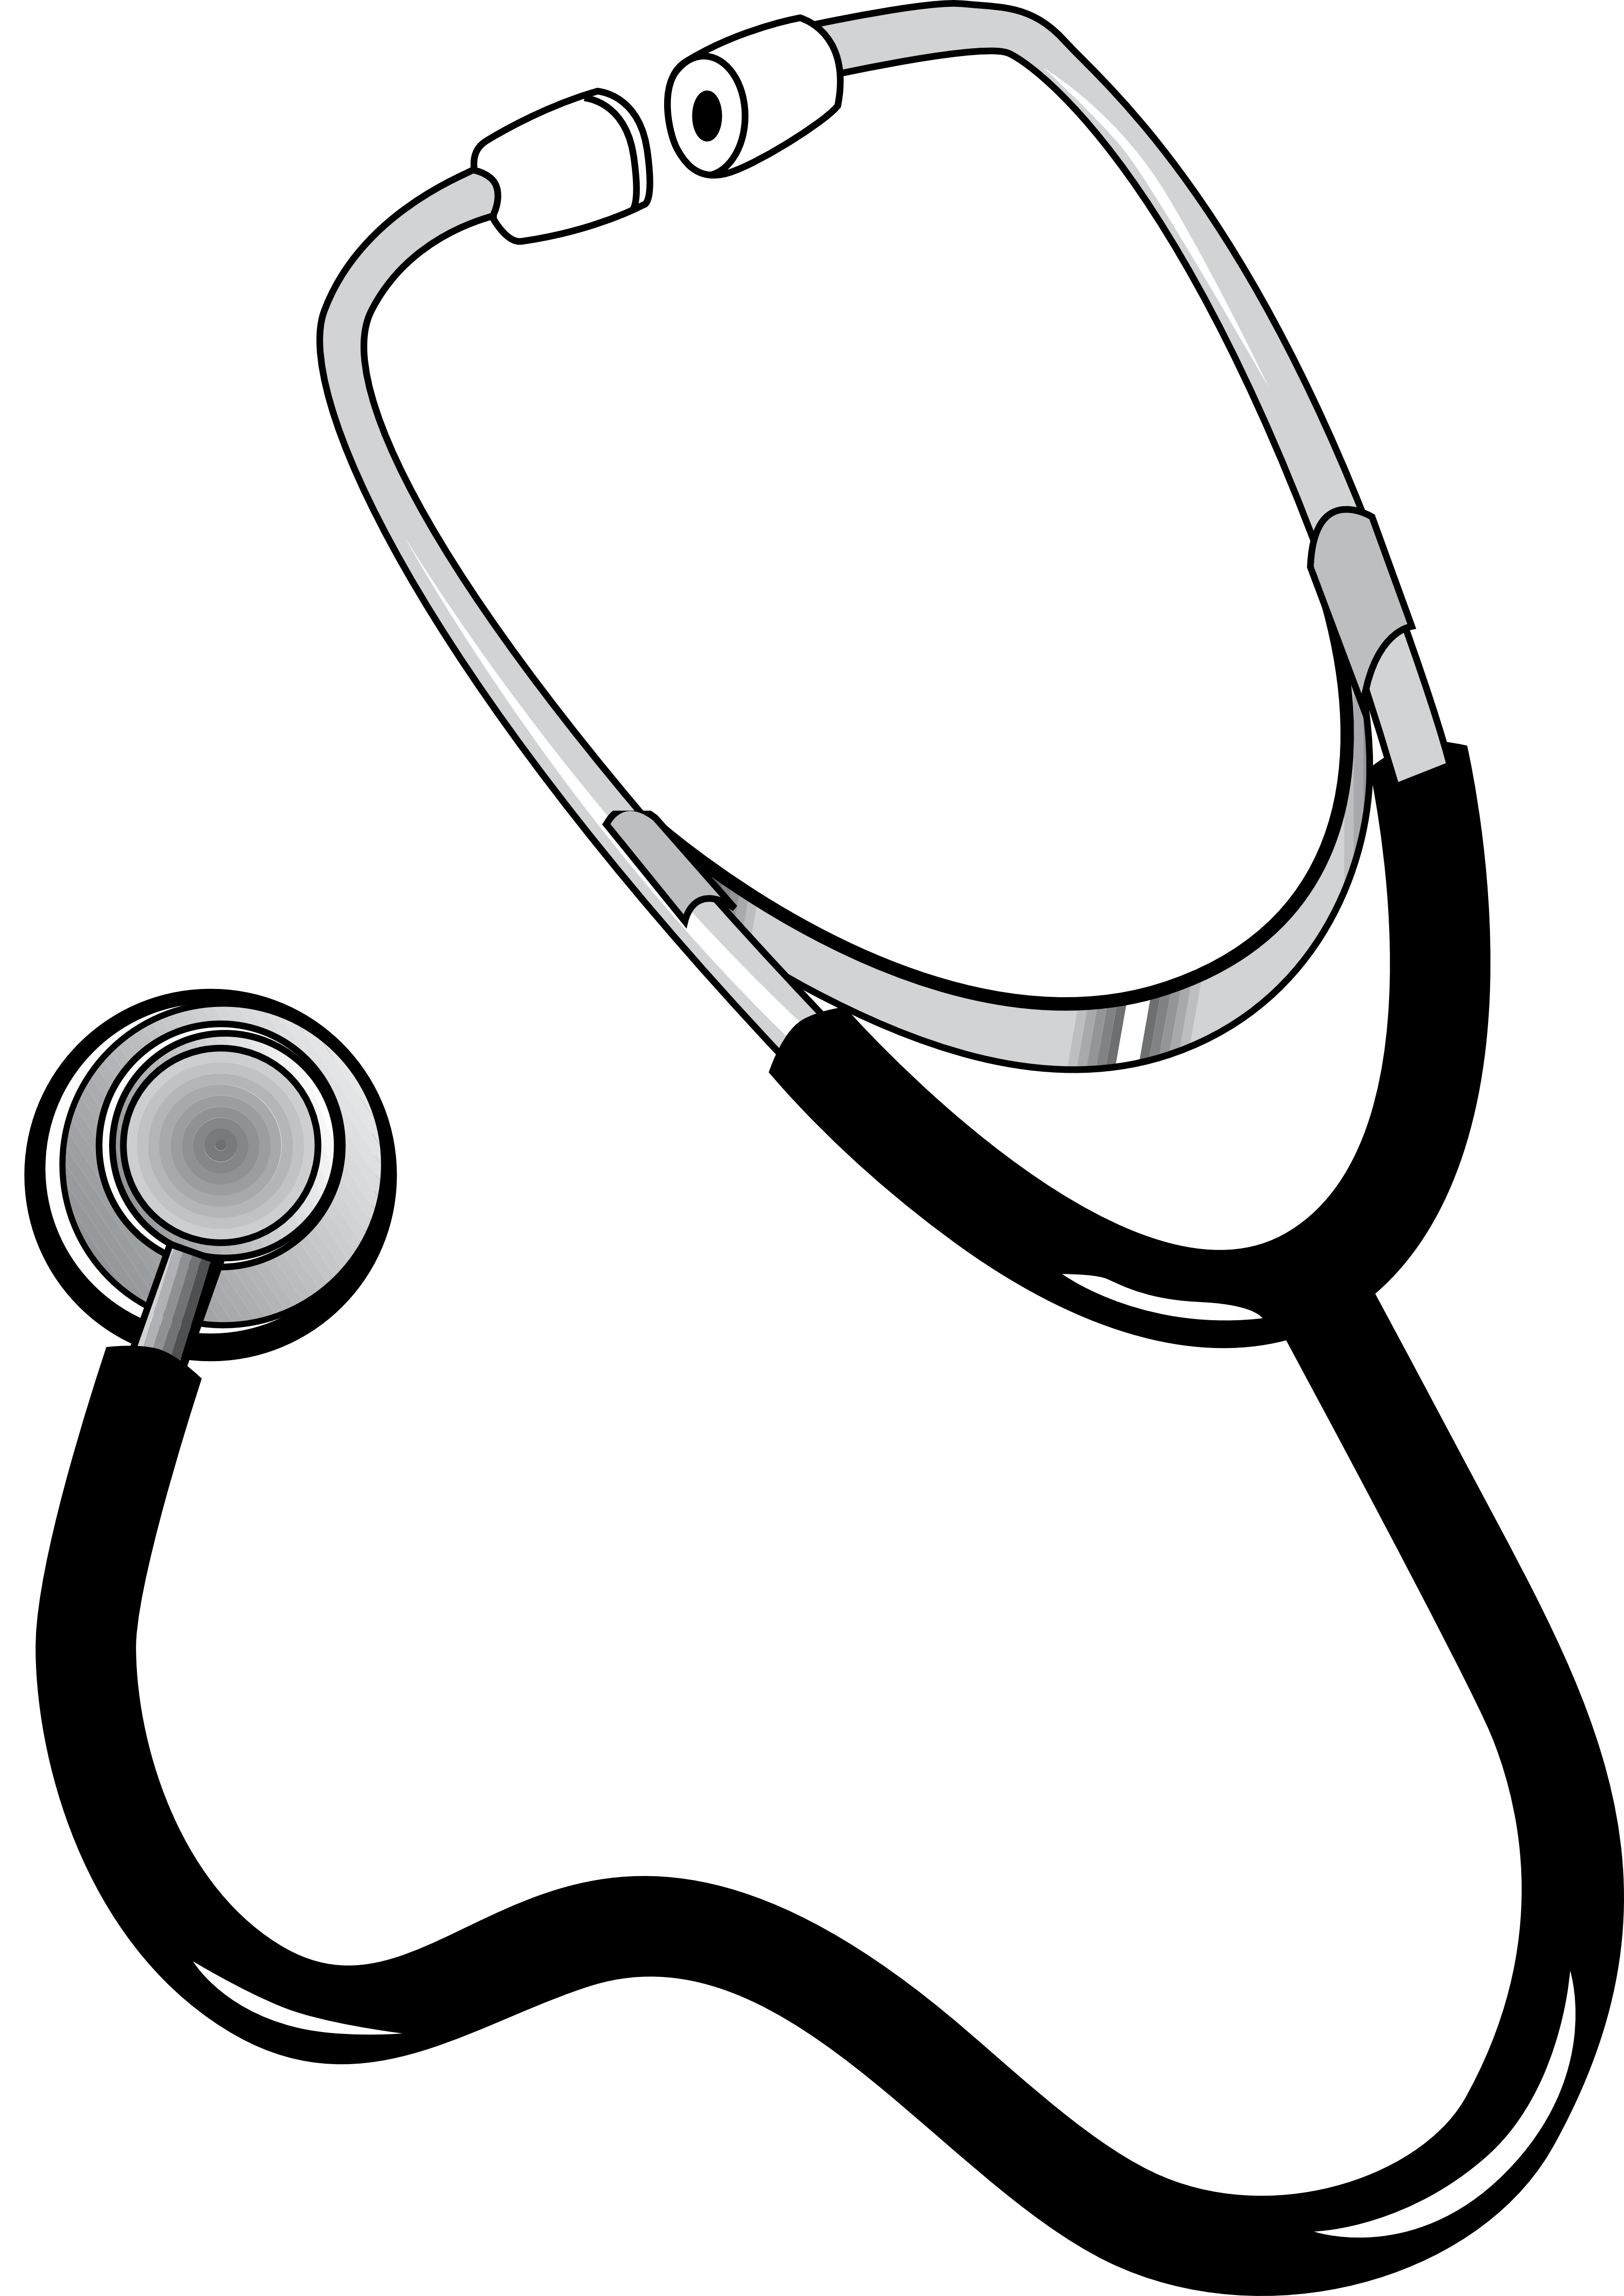 Free Stethoscope Clipart Transparent Background, Download.